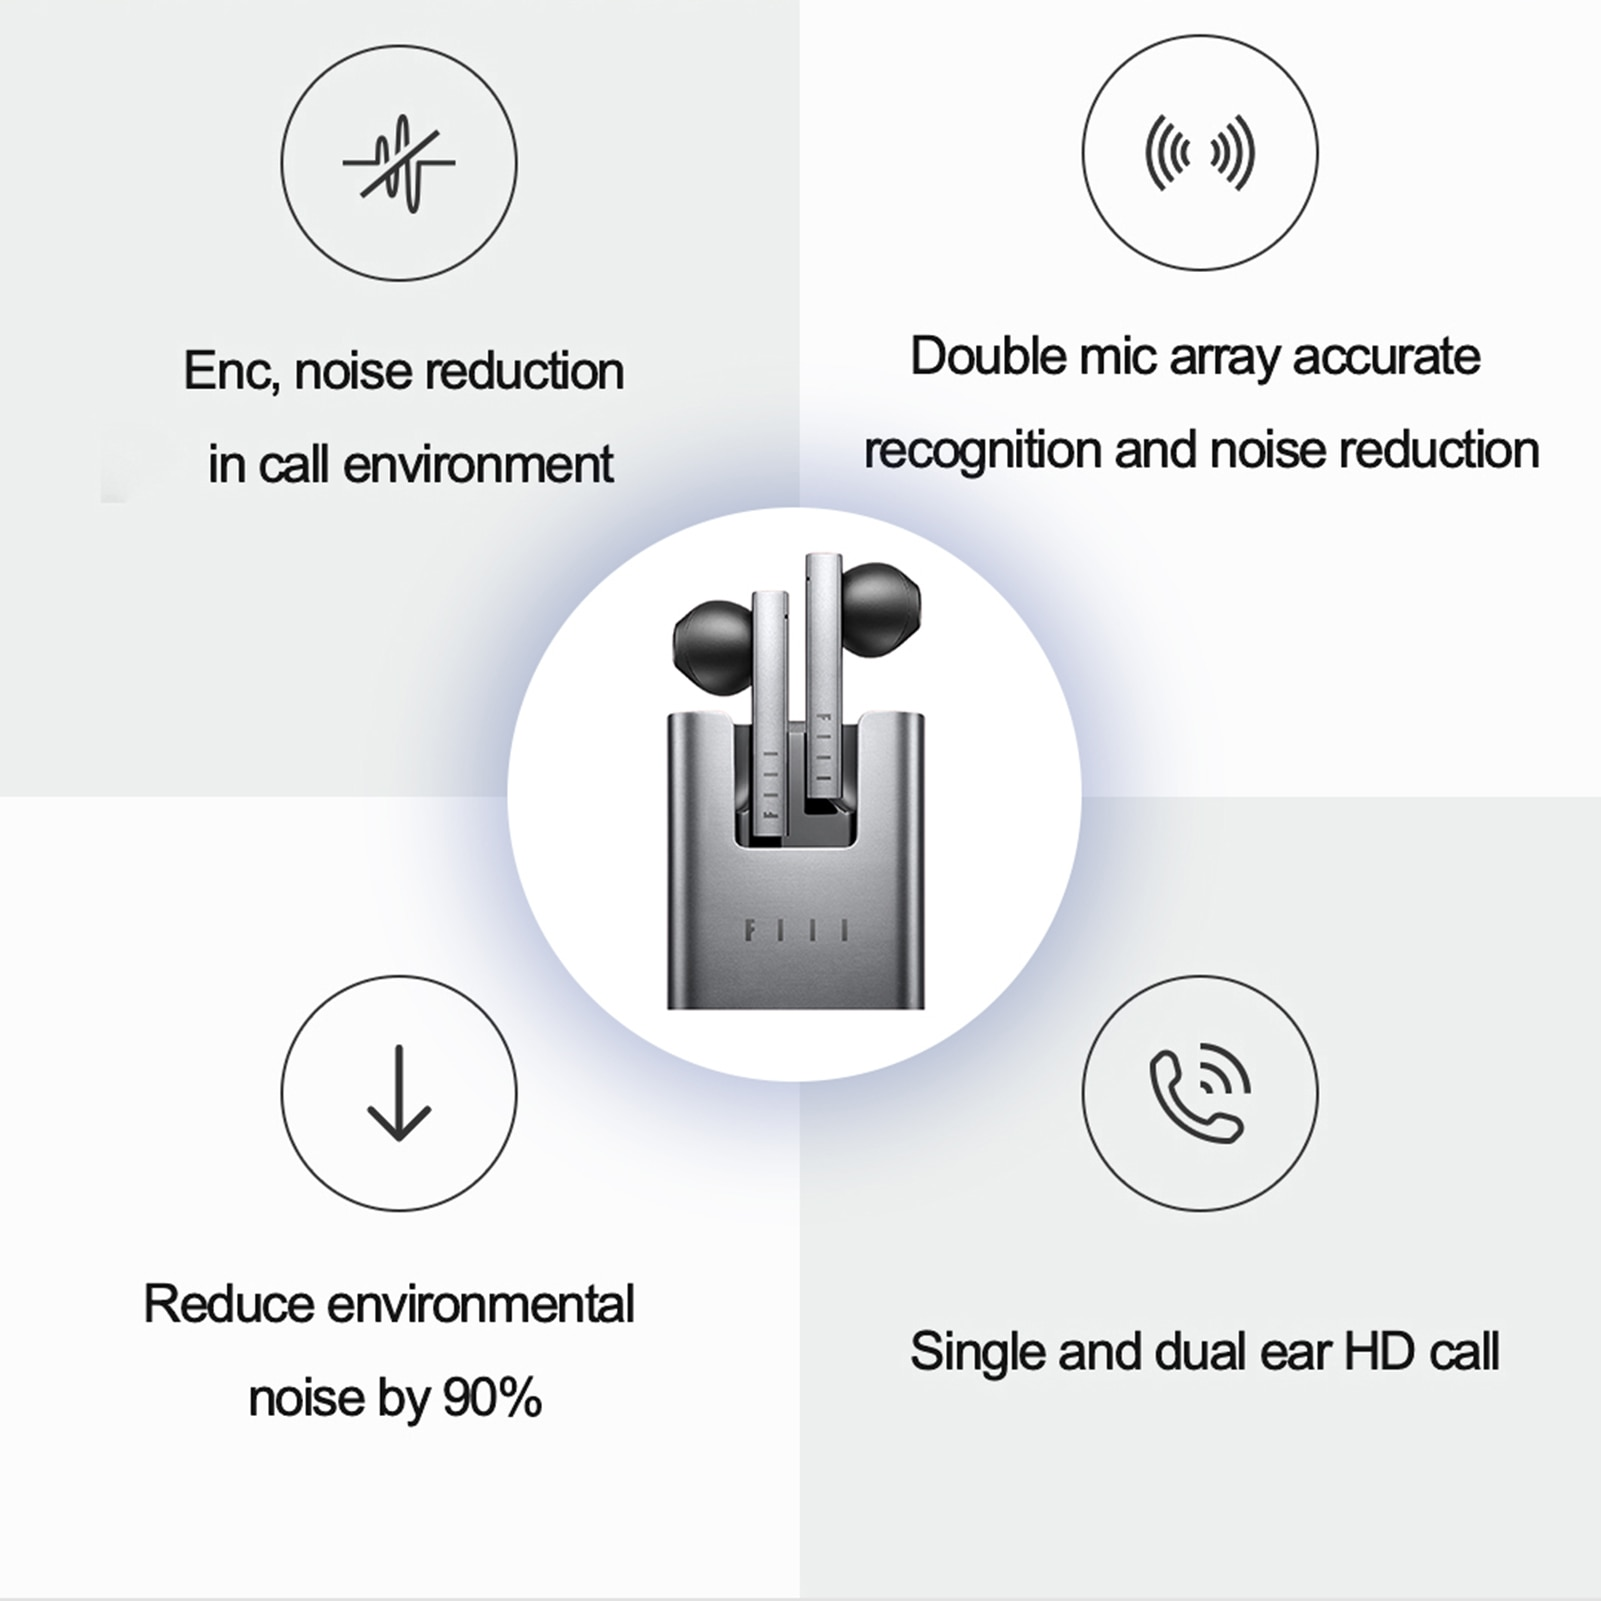 New FIIL CC 2 CC2 Wireless Bluetooth 5.2 Earphone Charging Case TWS Gaming Headset Noise Canceling Ear Buds Earphone With Mic enlarge